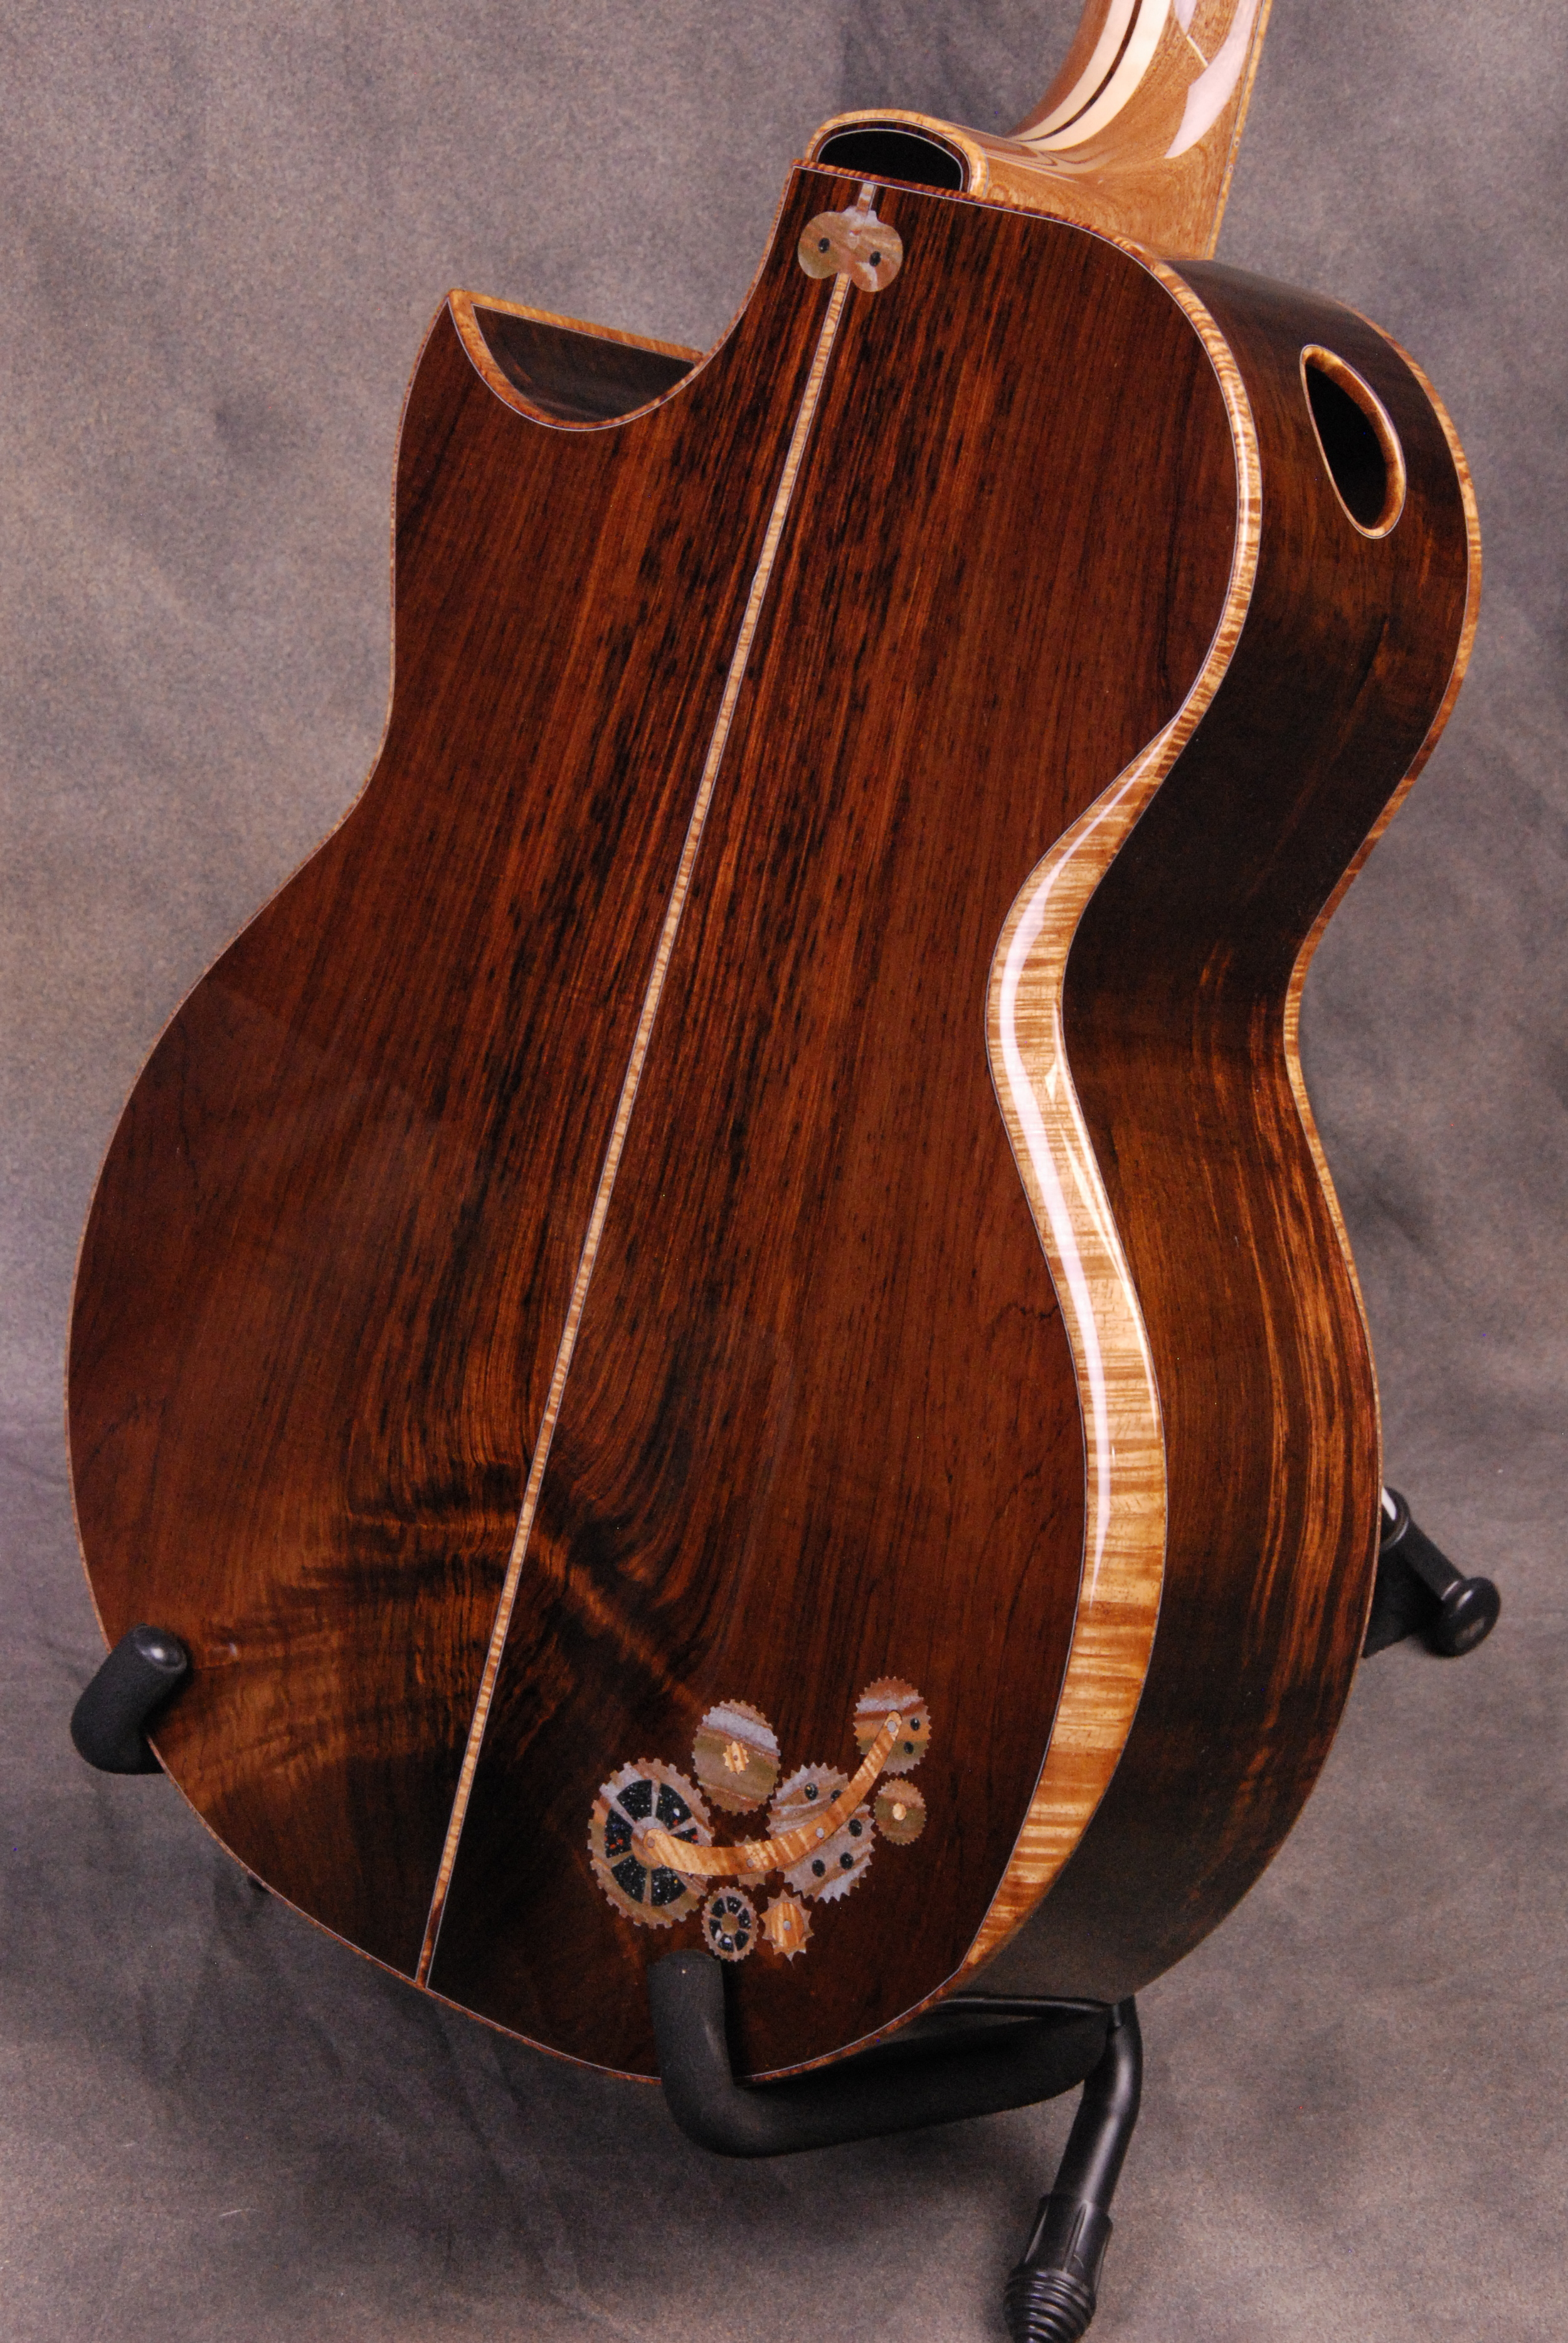 S/N 400 - Brazilian Rosewood Back & Sides, Interior Cedar Top